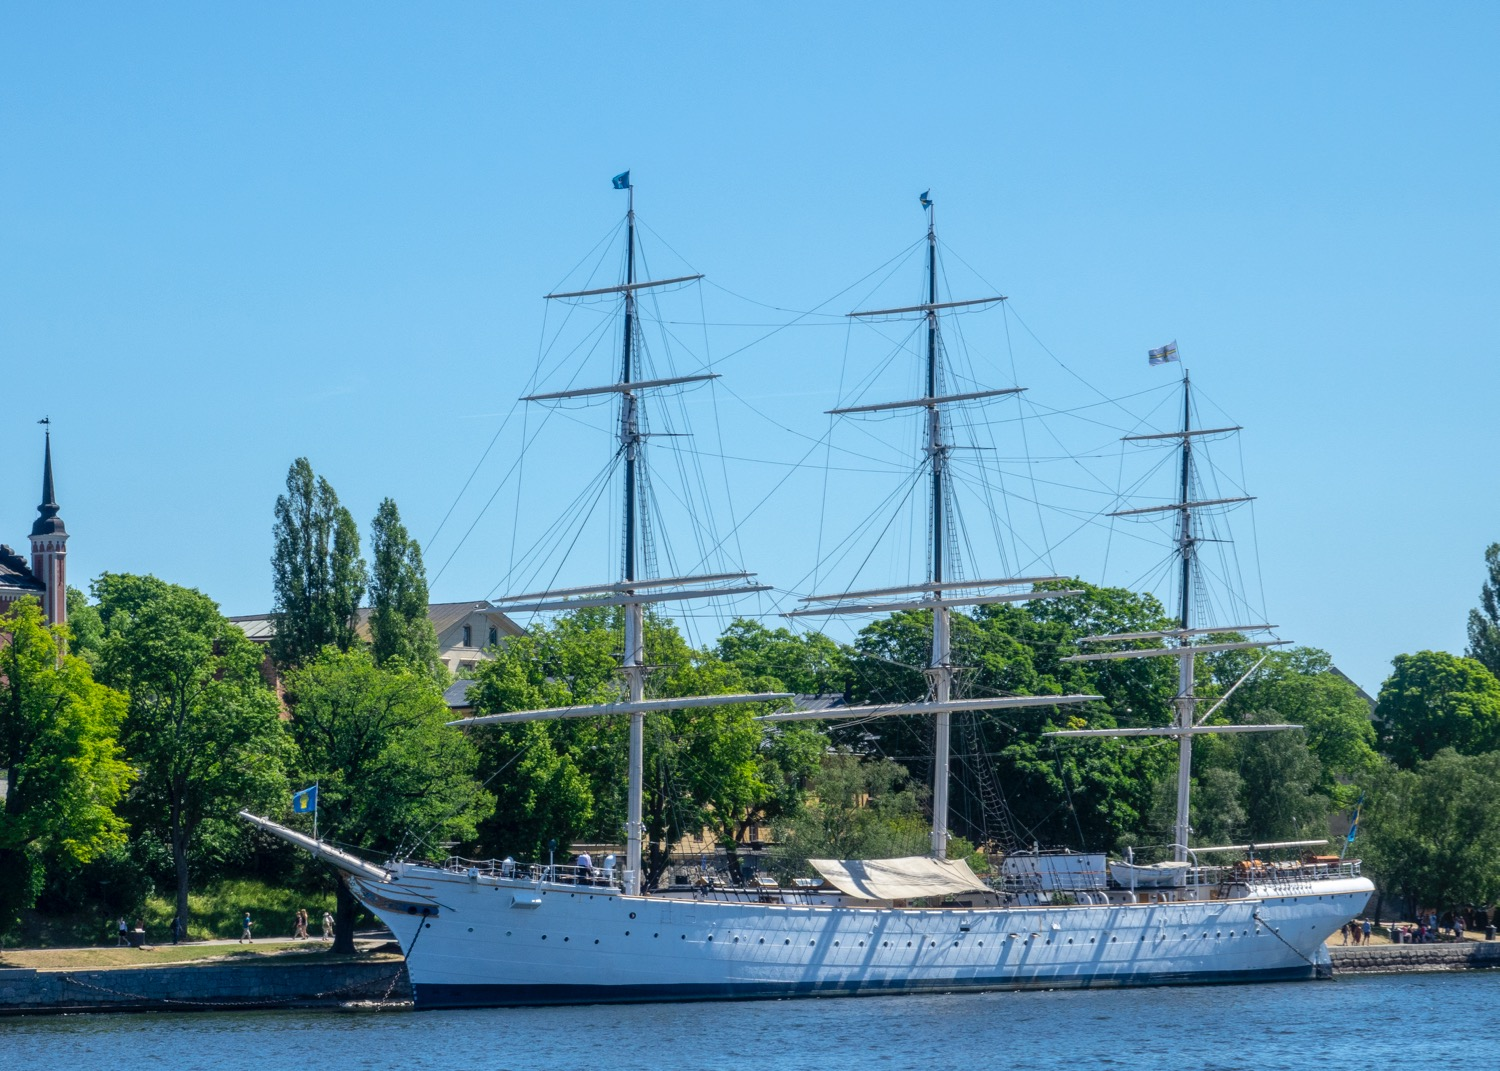 On the Water - The Stockholm waterfront